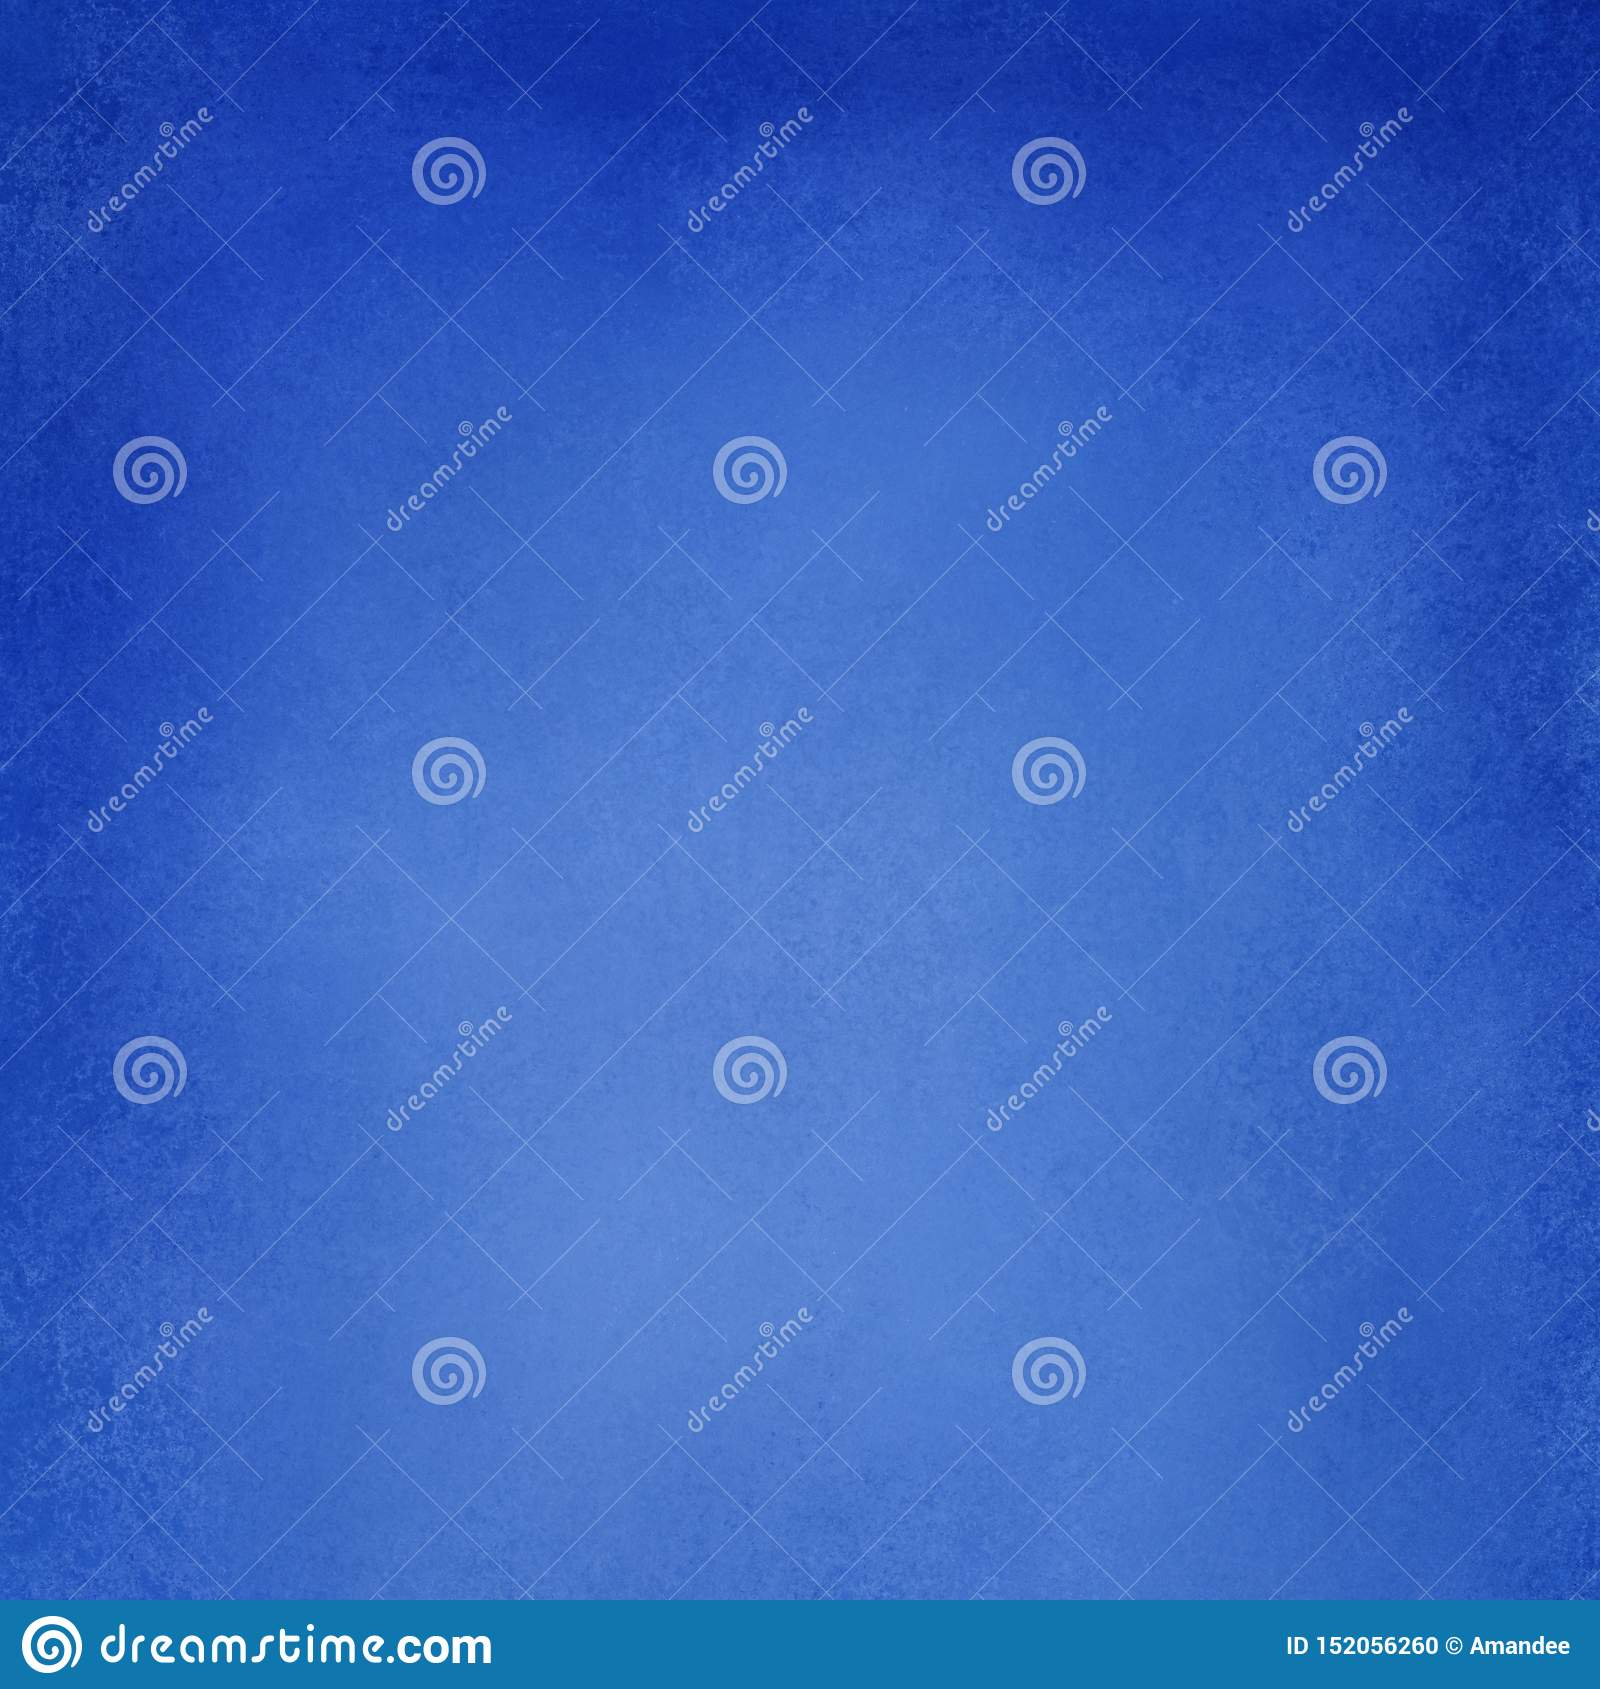 Abstract Blue Background Texture, Solid Bright Blue Vintage